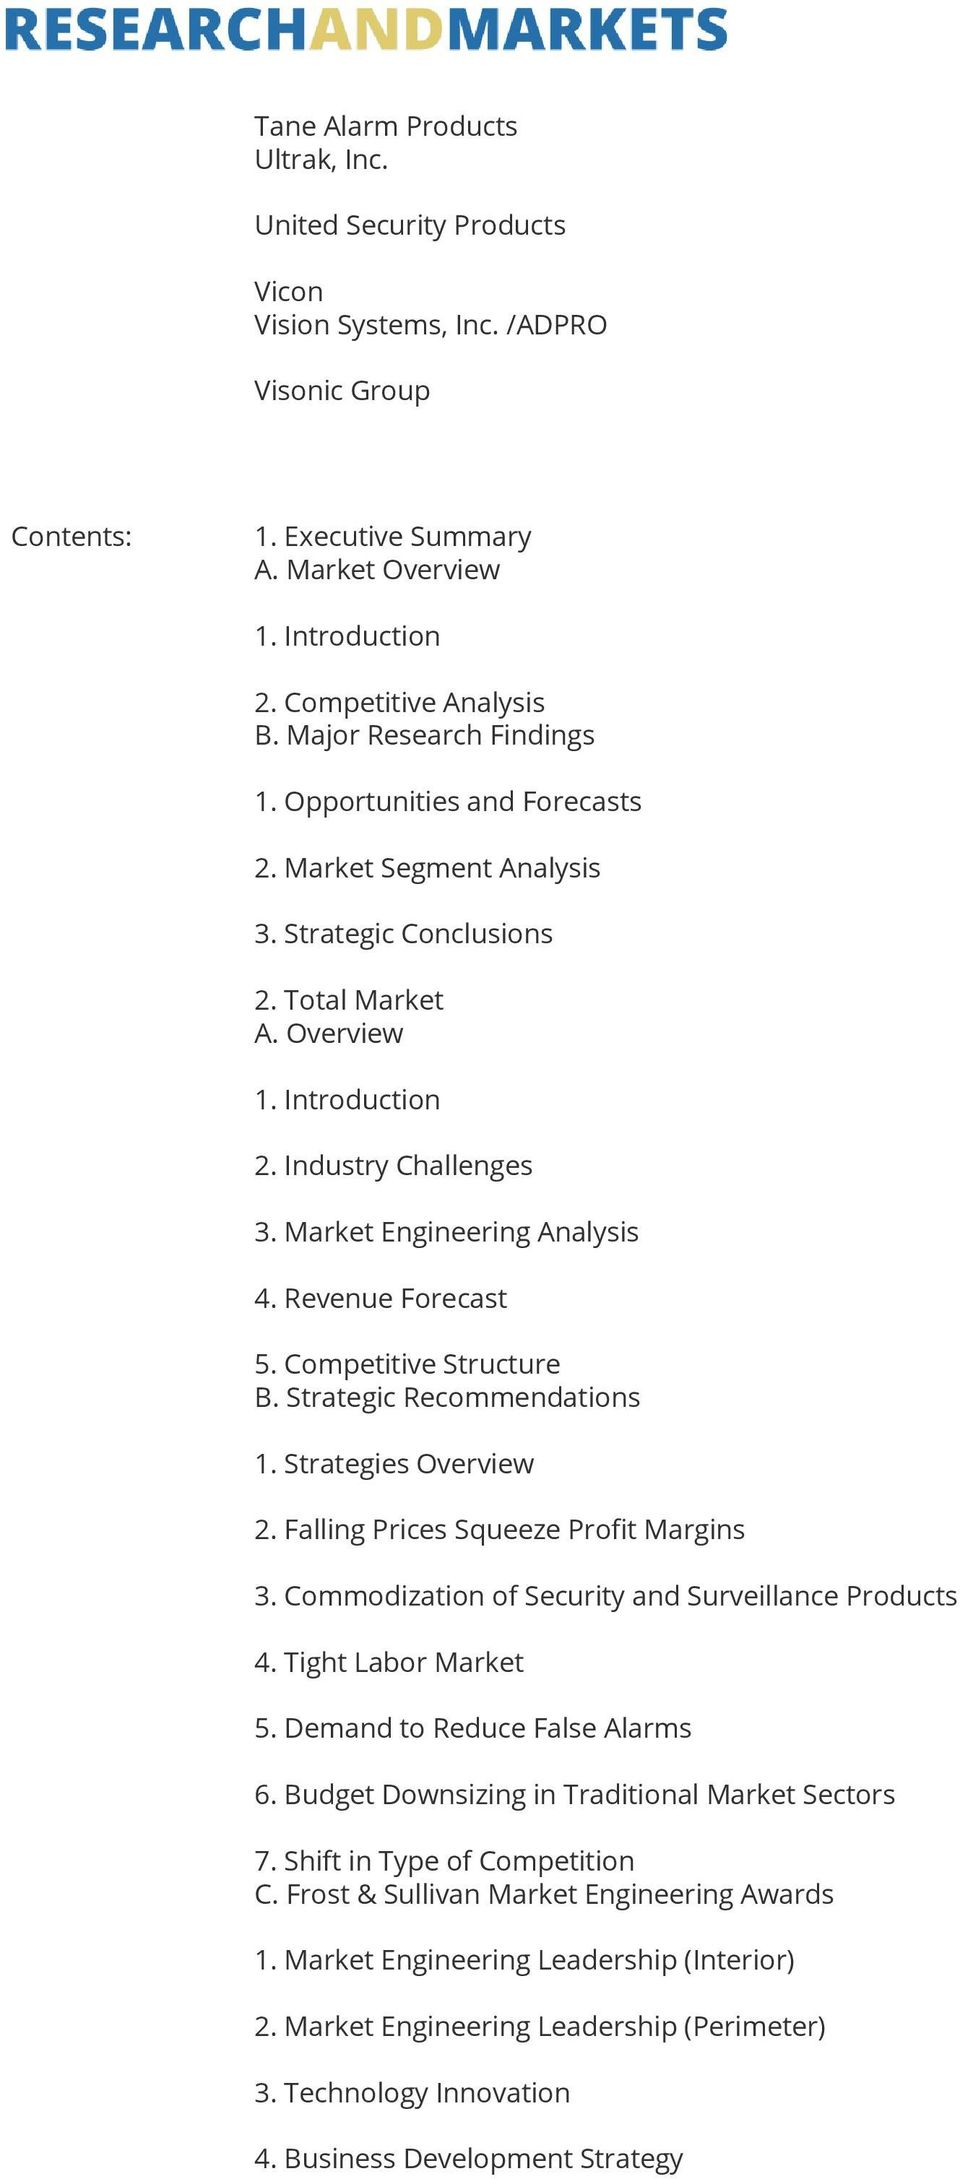 Market Engineering Analysis 4. Revenue Forecast 5. Competitive Structure B. Strategic Recommendations 1. Strategies Overview 2. Falling Prices Squeeze Profit Margins 3.